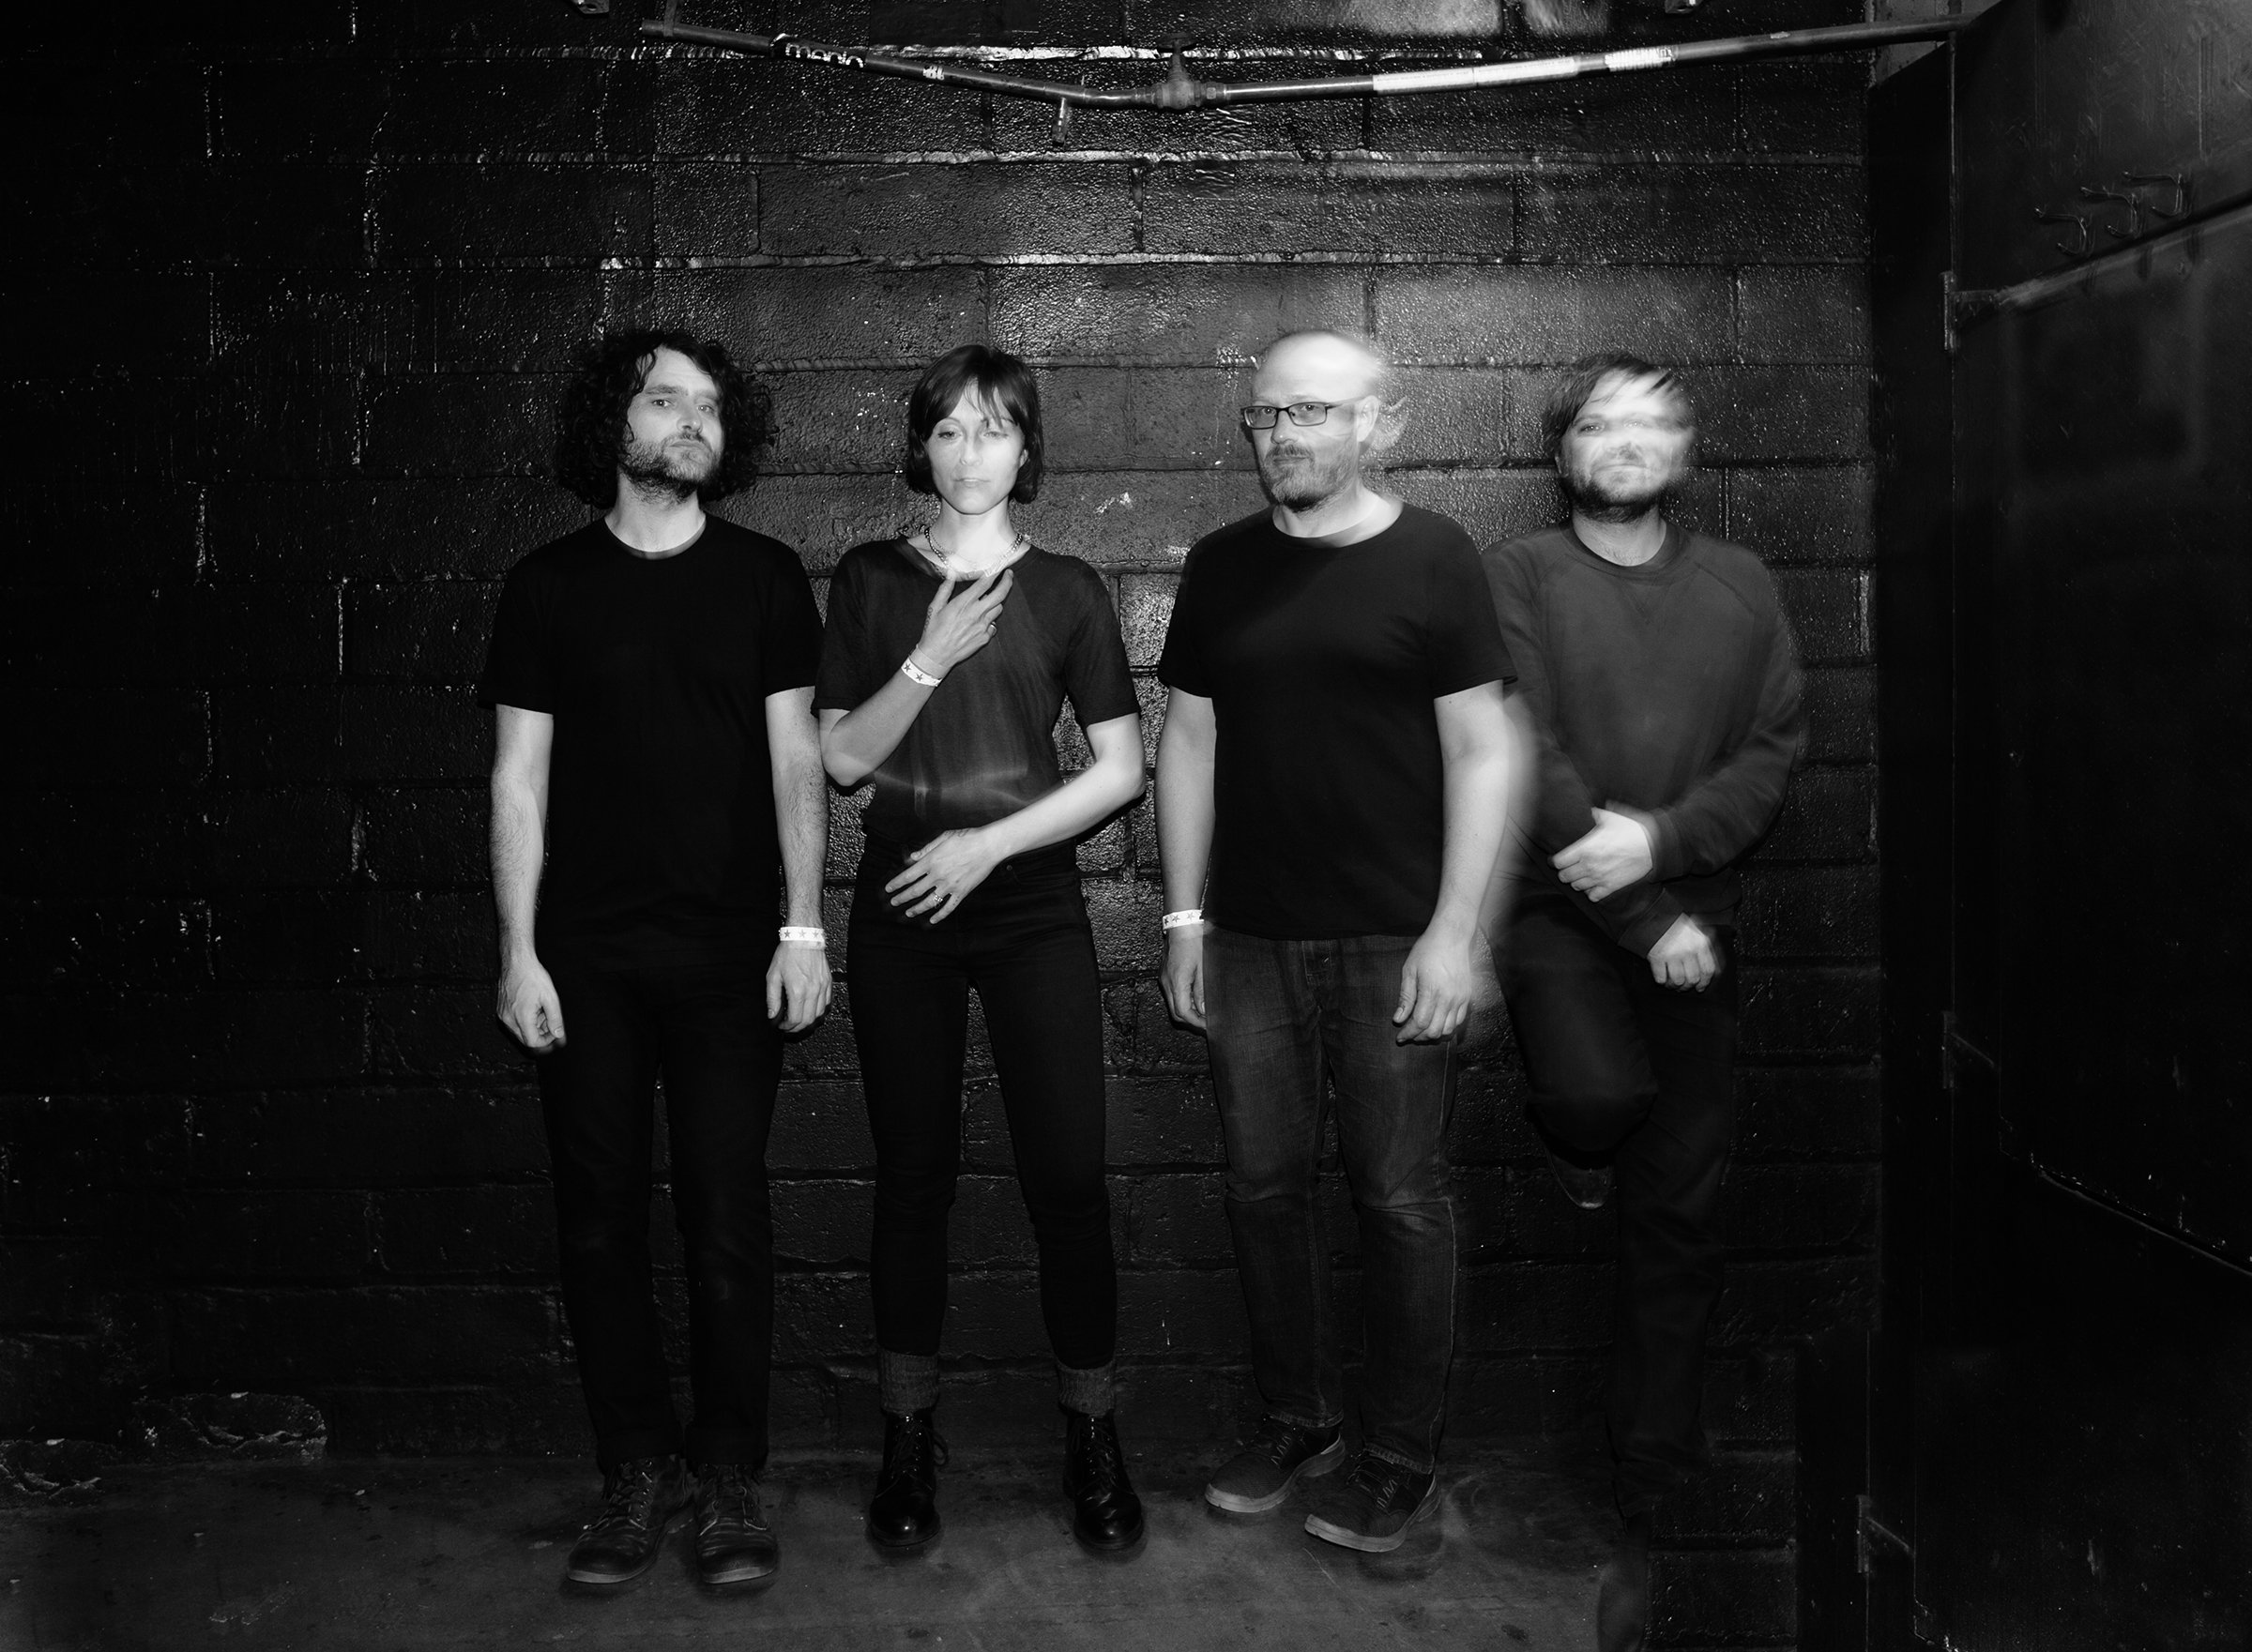 POLIÇA share new single 'Steady' from new LP 'When We Stay Alive' due Jan 24th